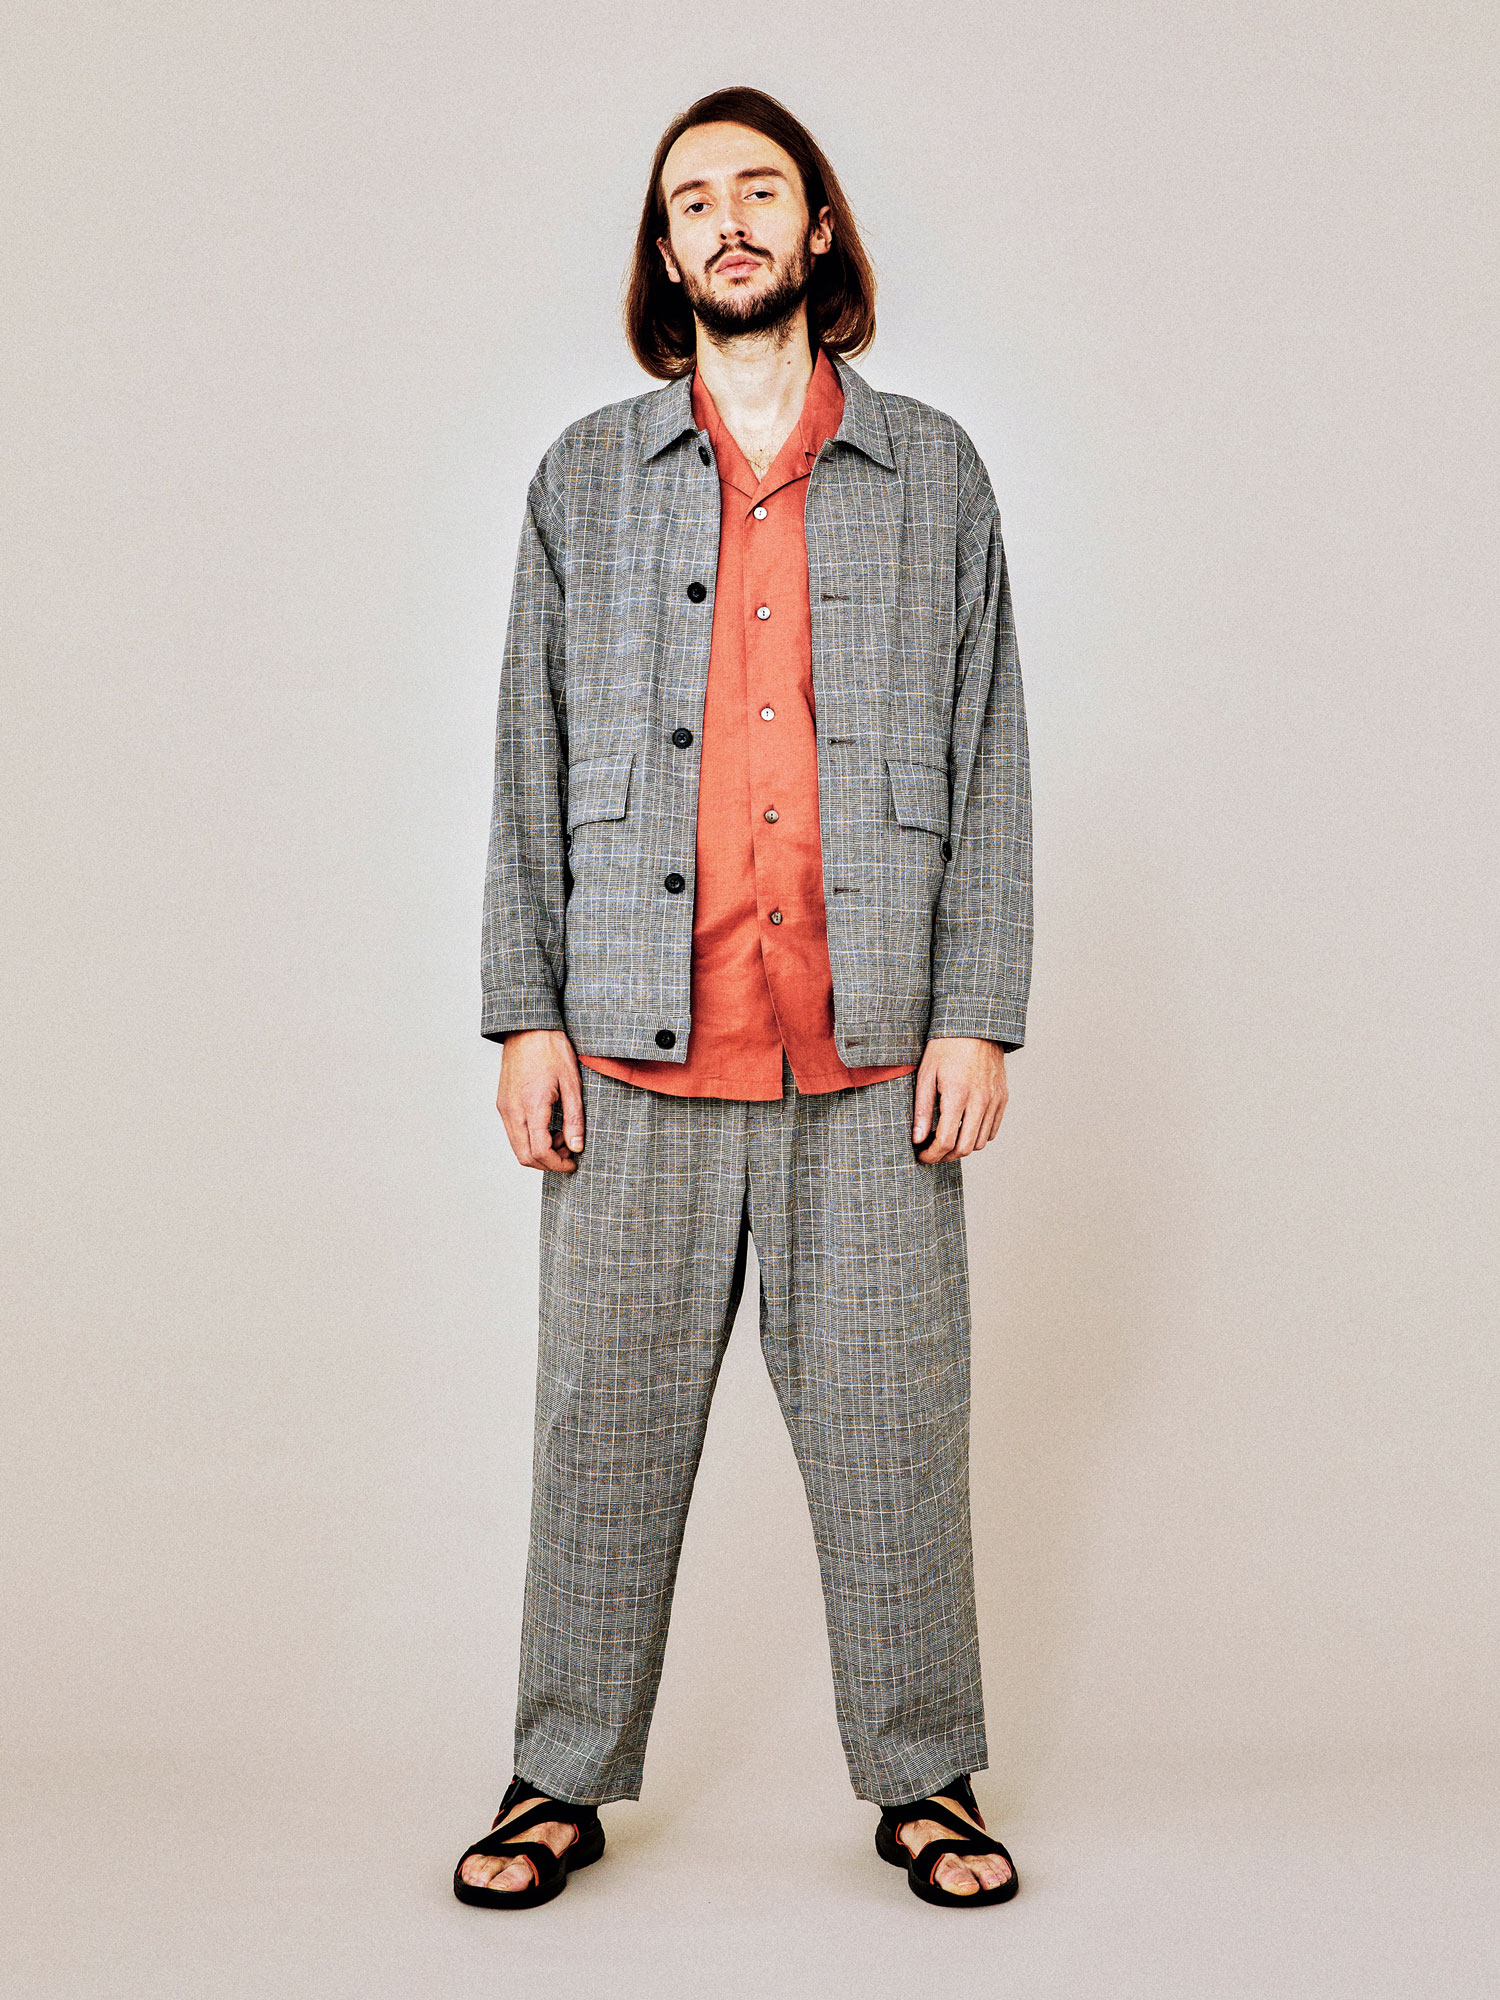 【MEN'S 2020 SS】JOHNBULL LOOK BOOK アイテム